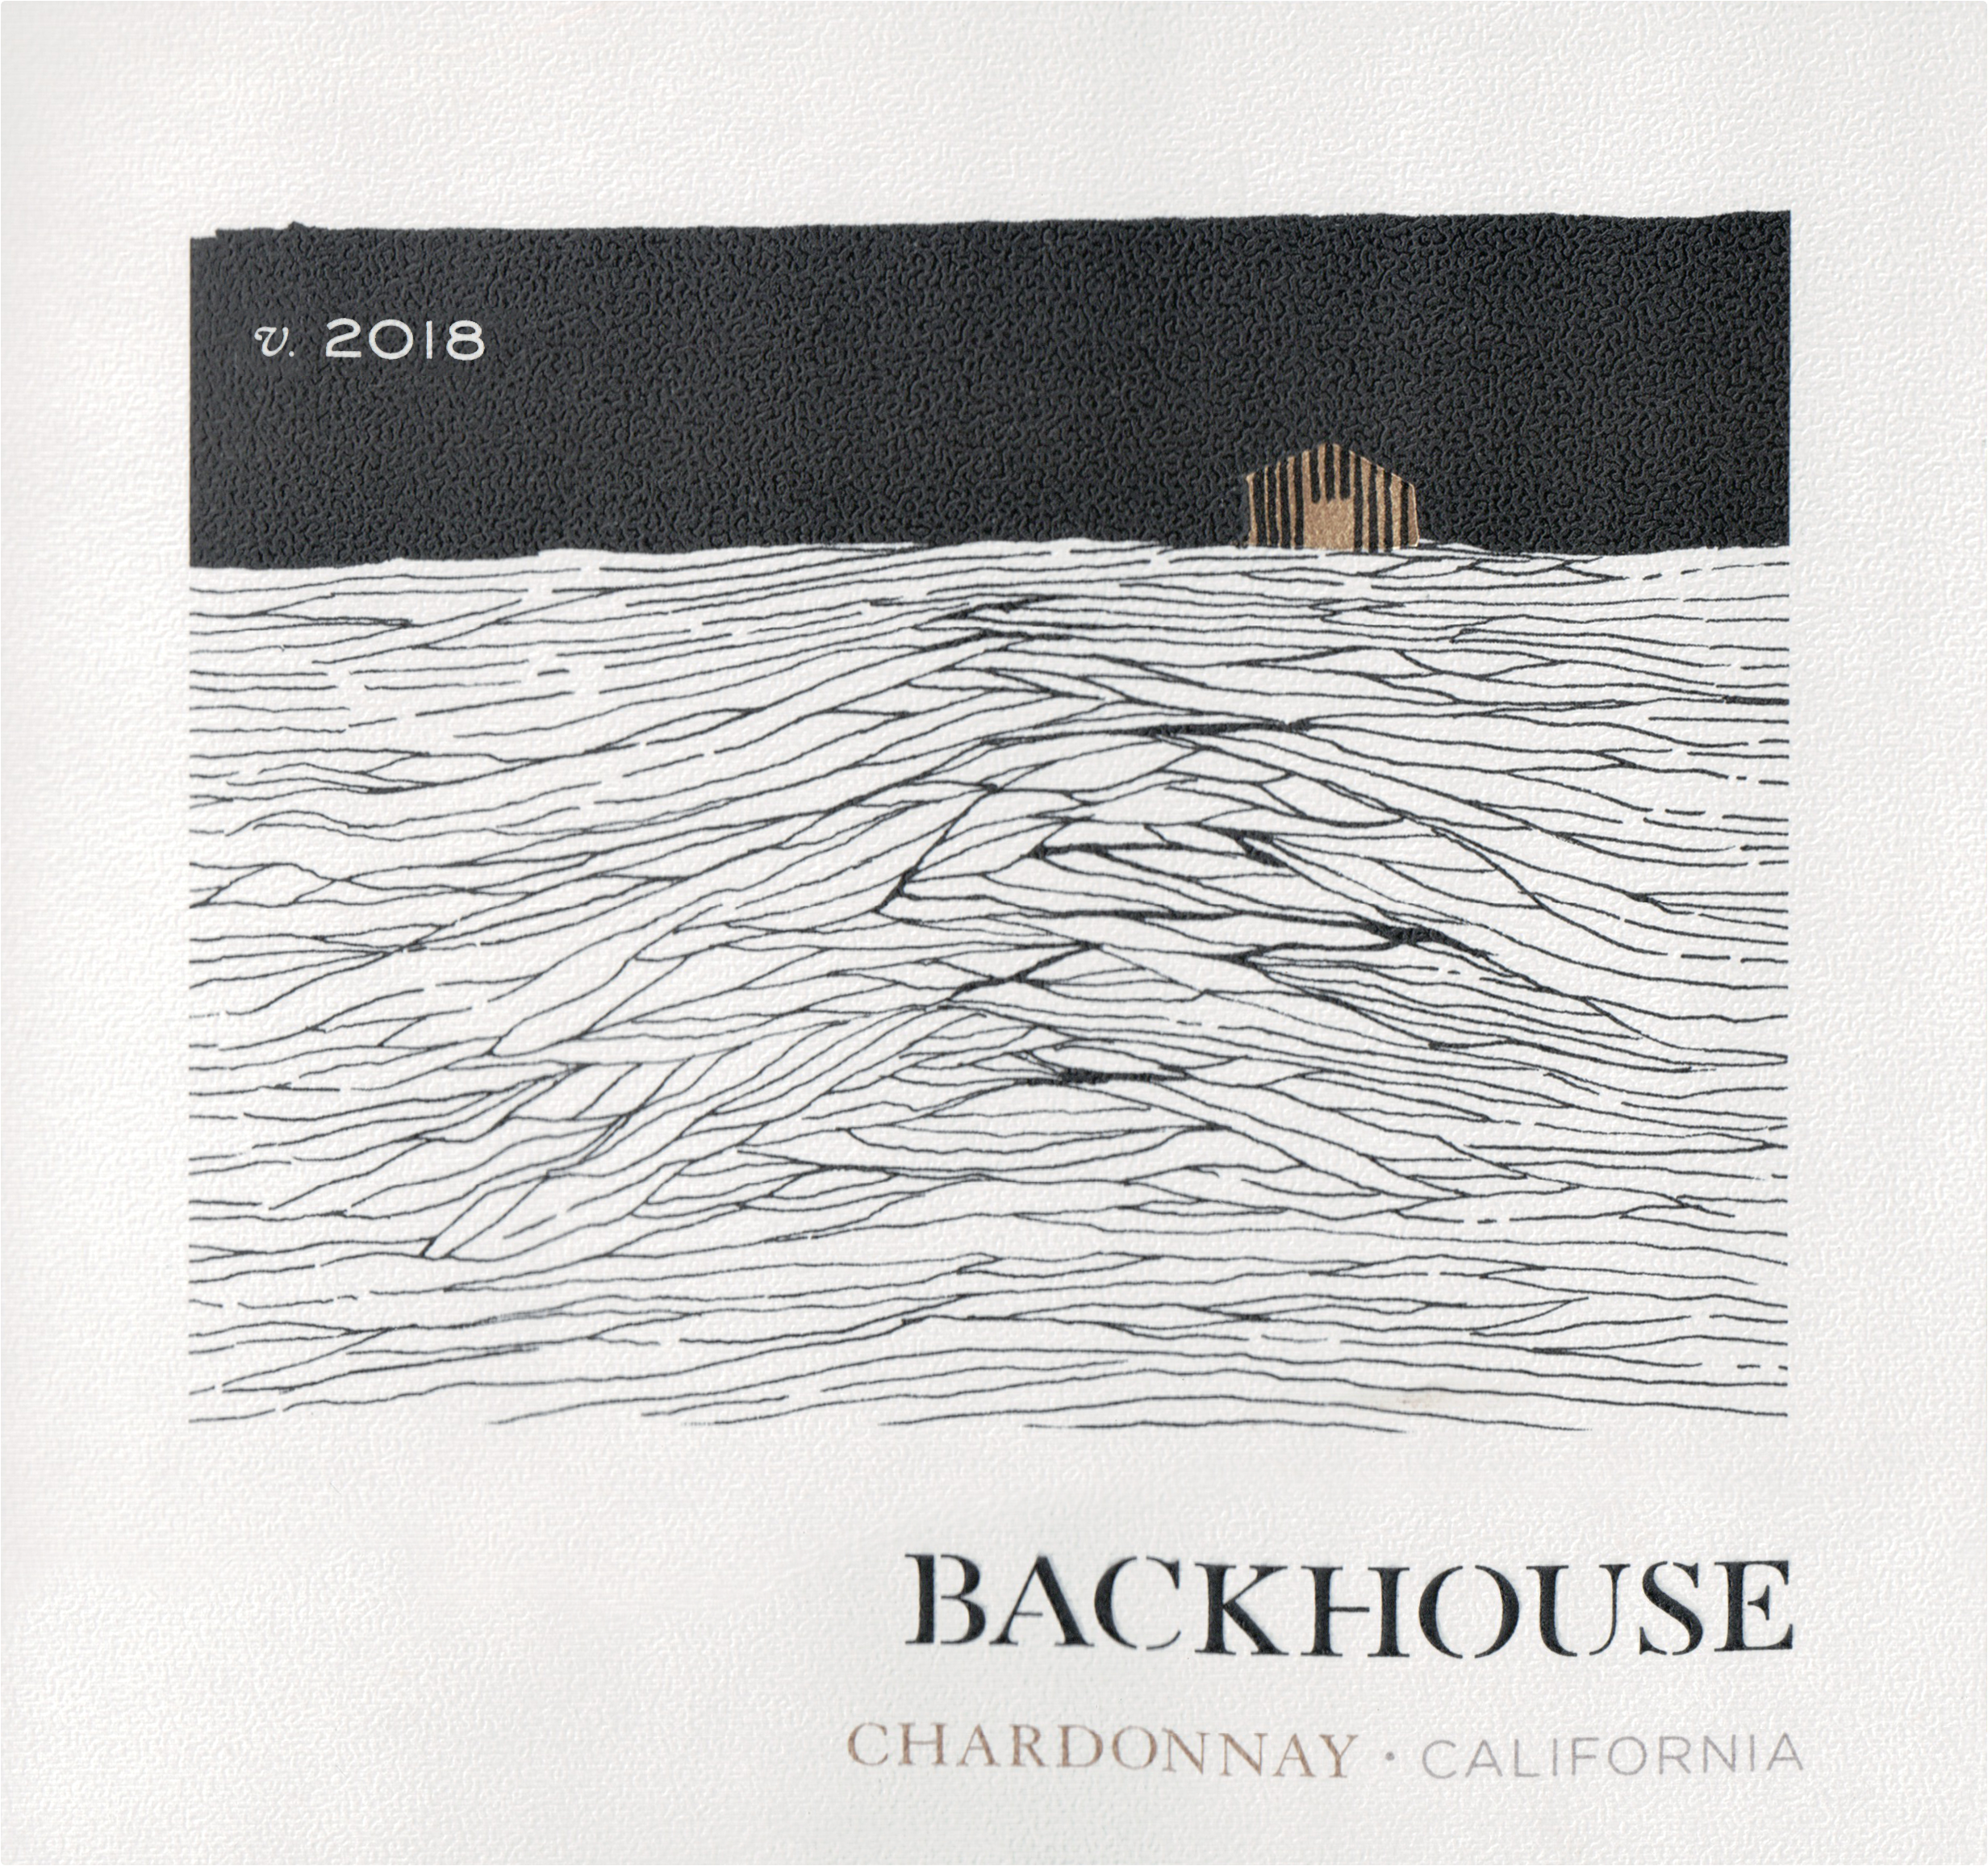 Backhouse Chardonnay 2018